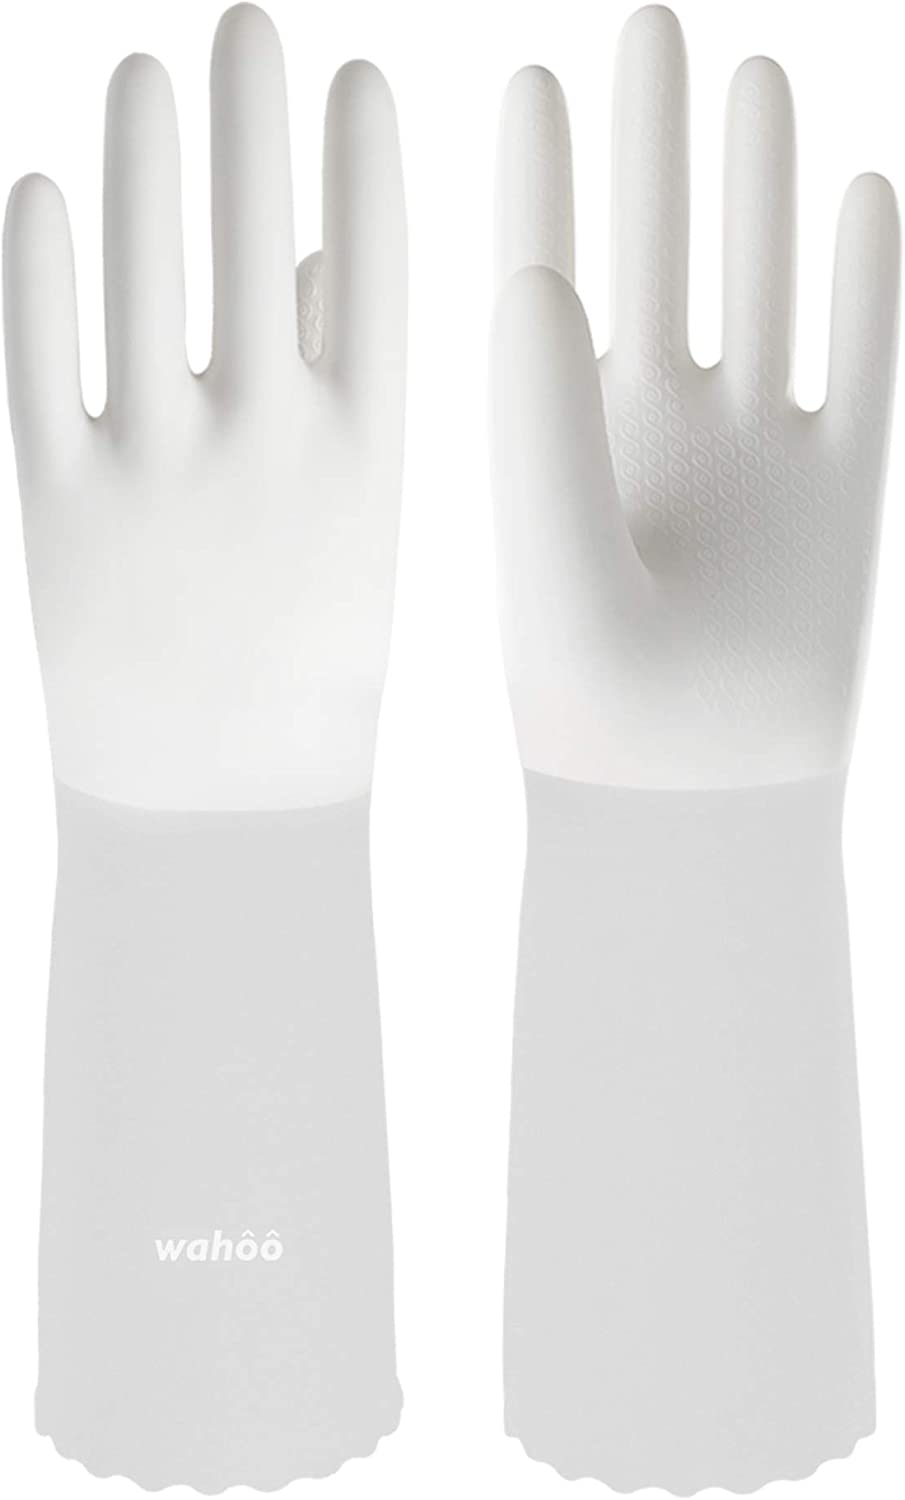 LANON Wahoo Animer and price revision Wholesale PVC Household Cleaning Unlined Dish Reusable Gloves